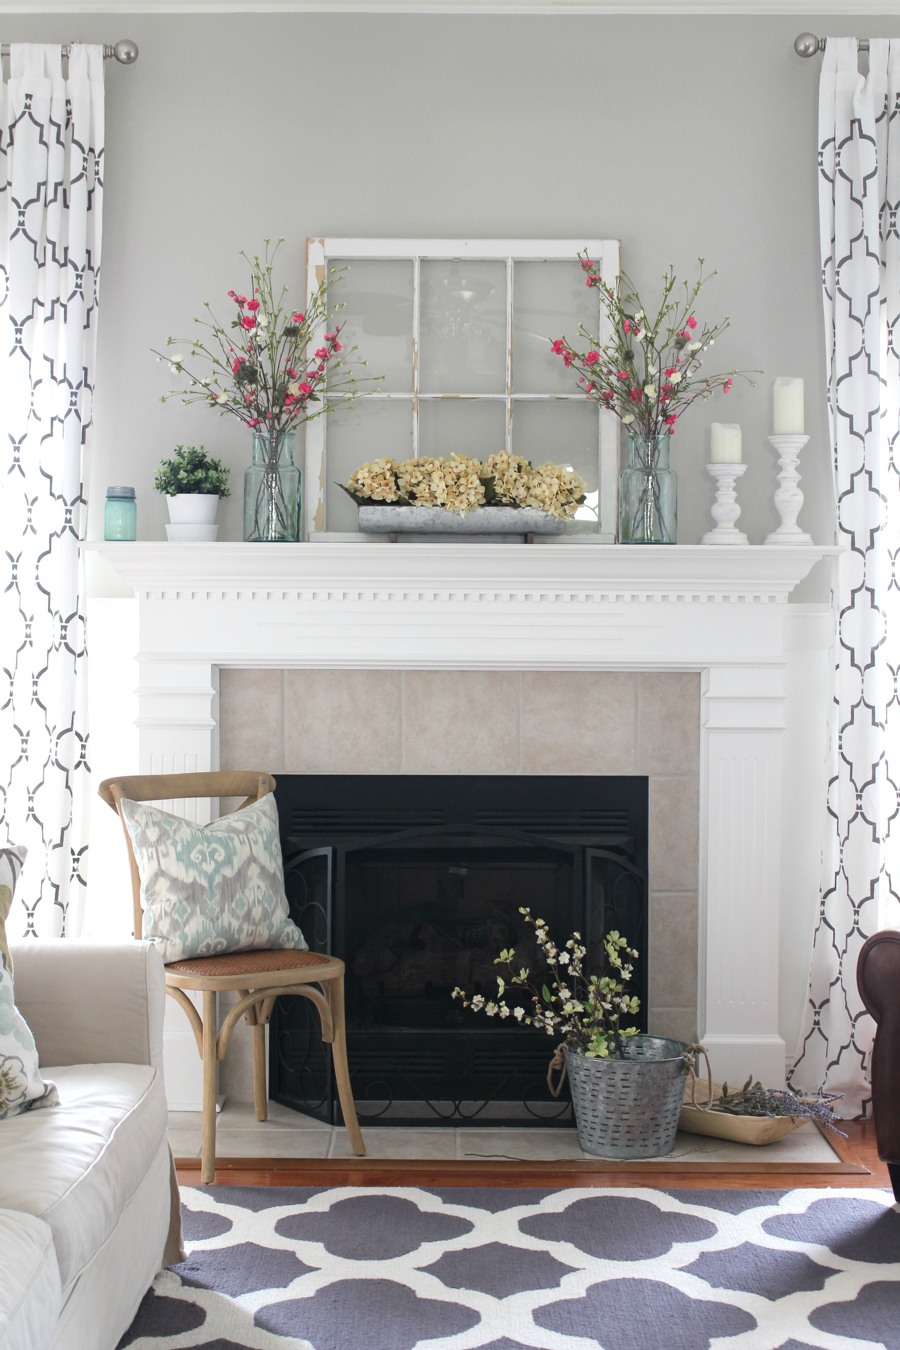 rustic decorating ideas for living room yellow and gray rooms 27 farmhouse decor your home homelovr mantel